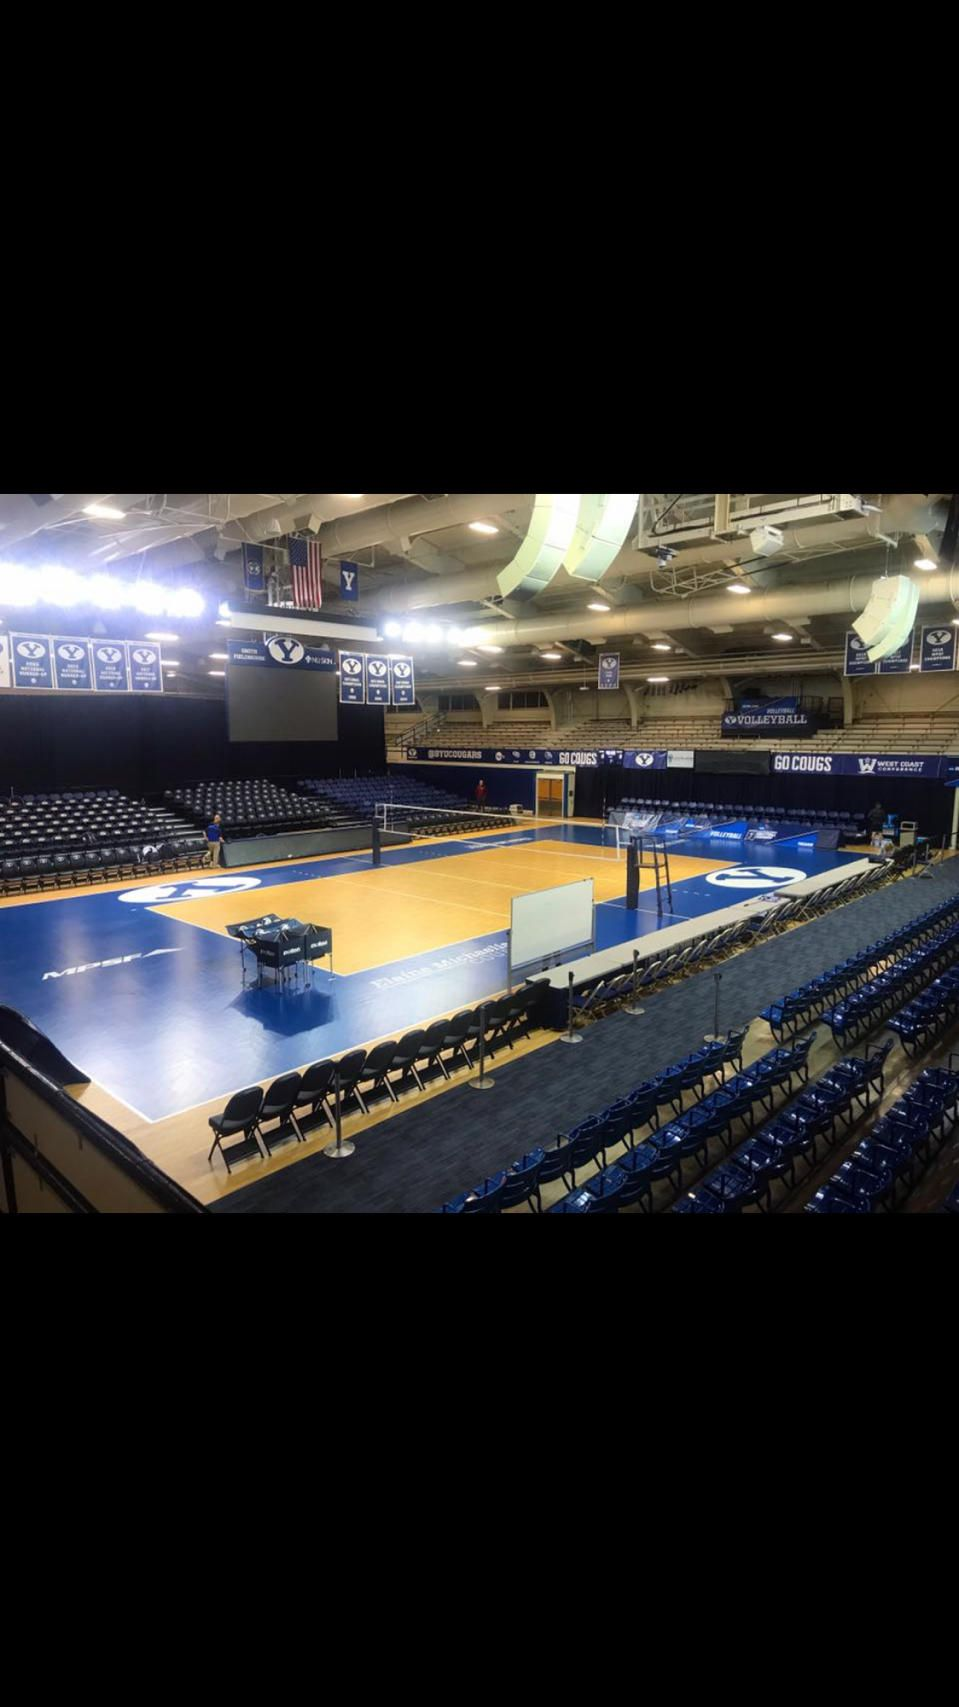 Byu Women Volleyball Team Won Every Match They Played On Their Taraflex Home Court In Smith Fieldhouse Women Volleyball Volleyball Team Sport Court